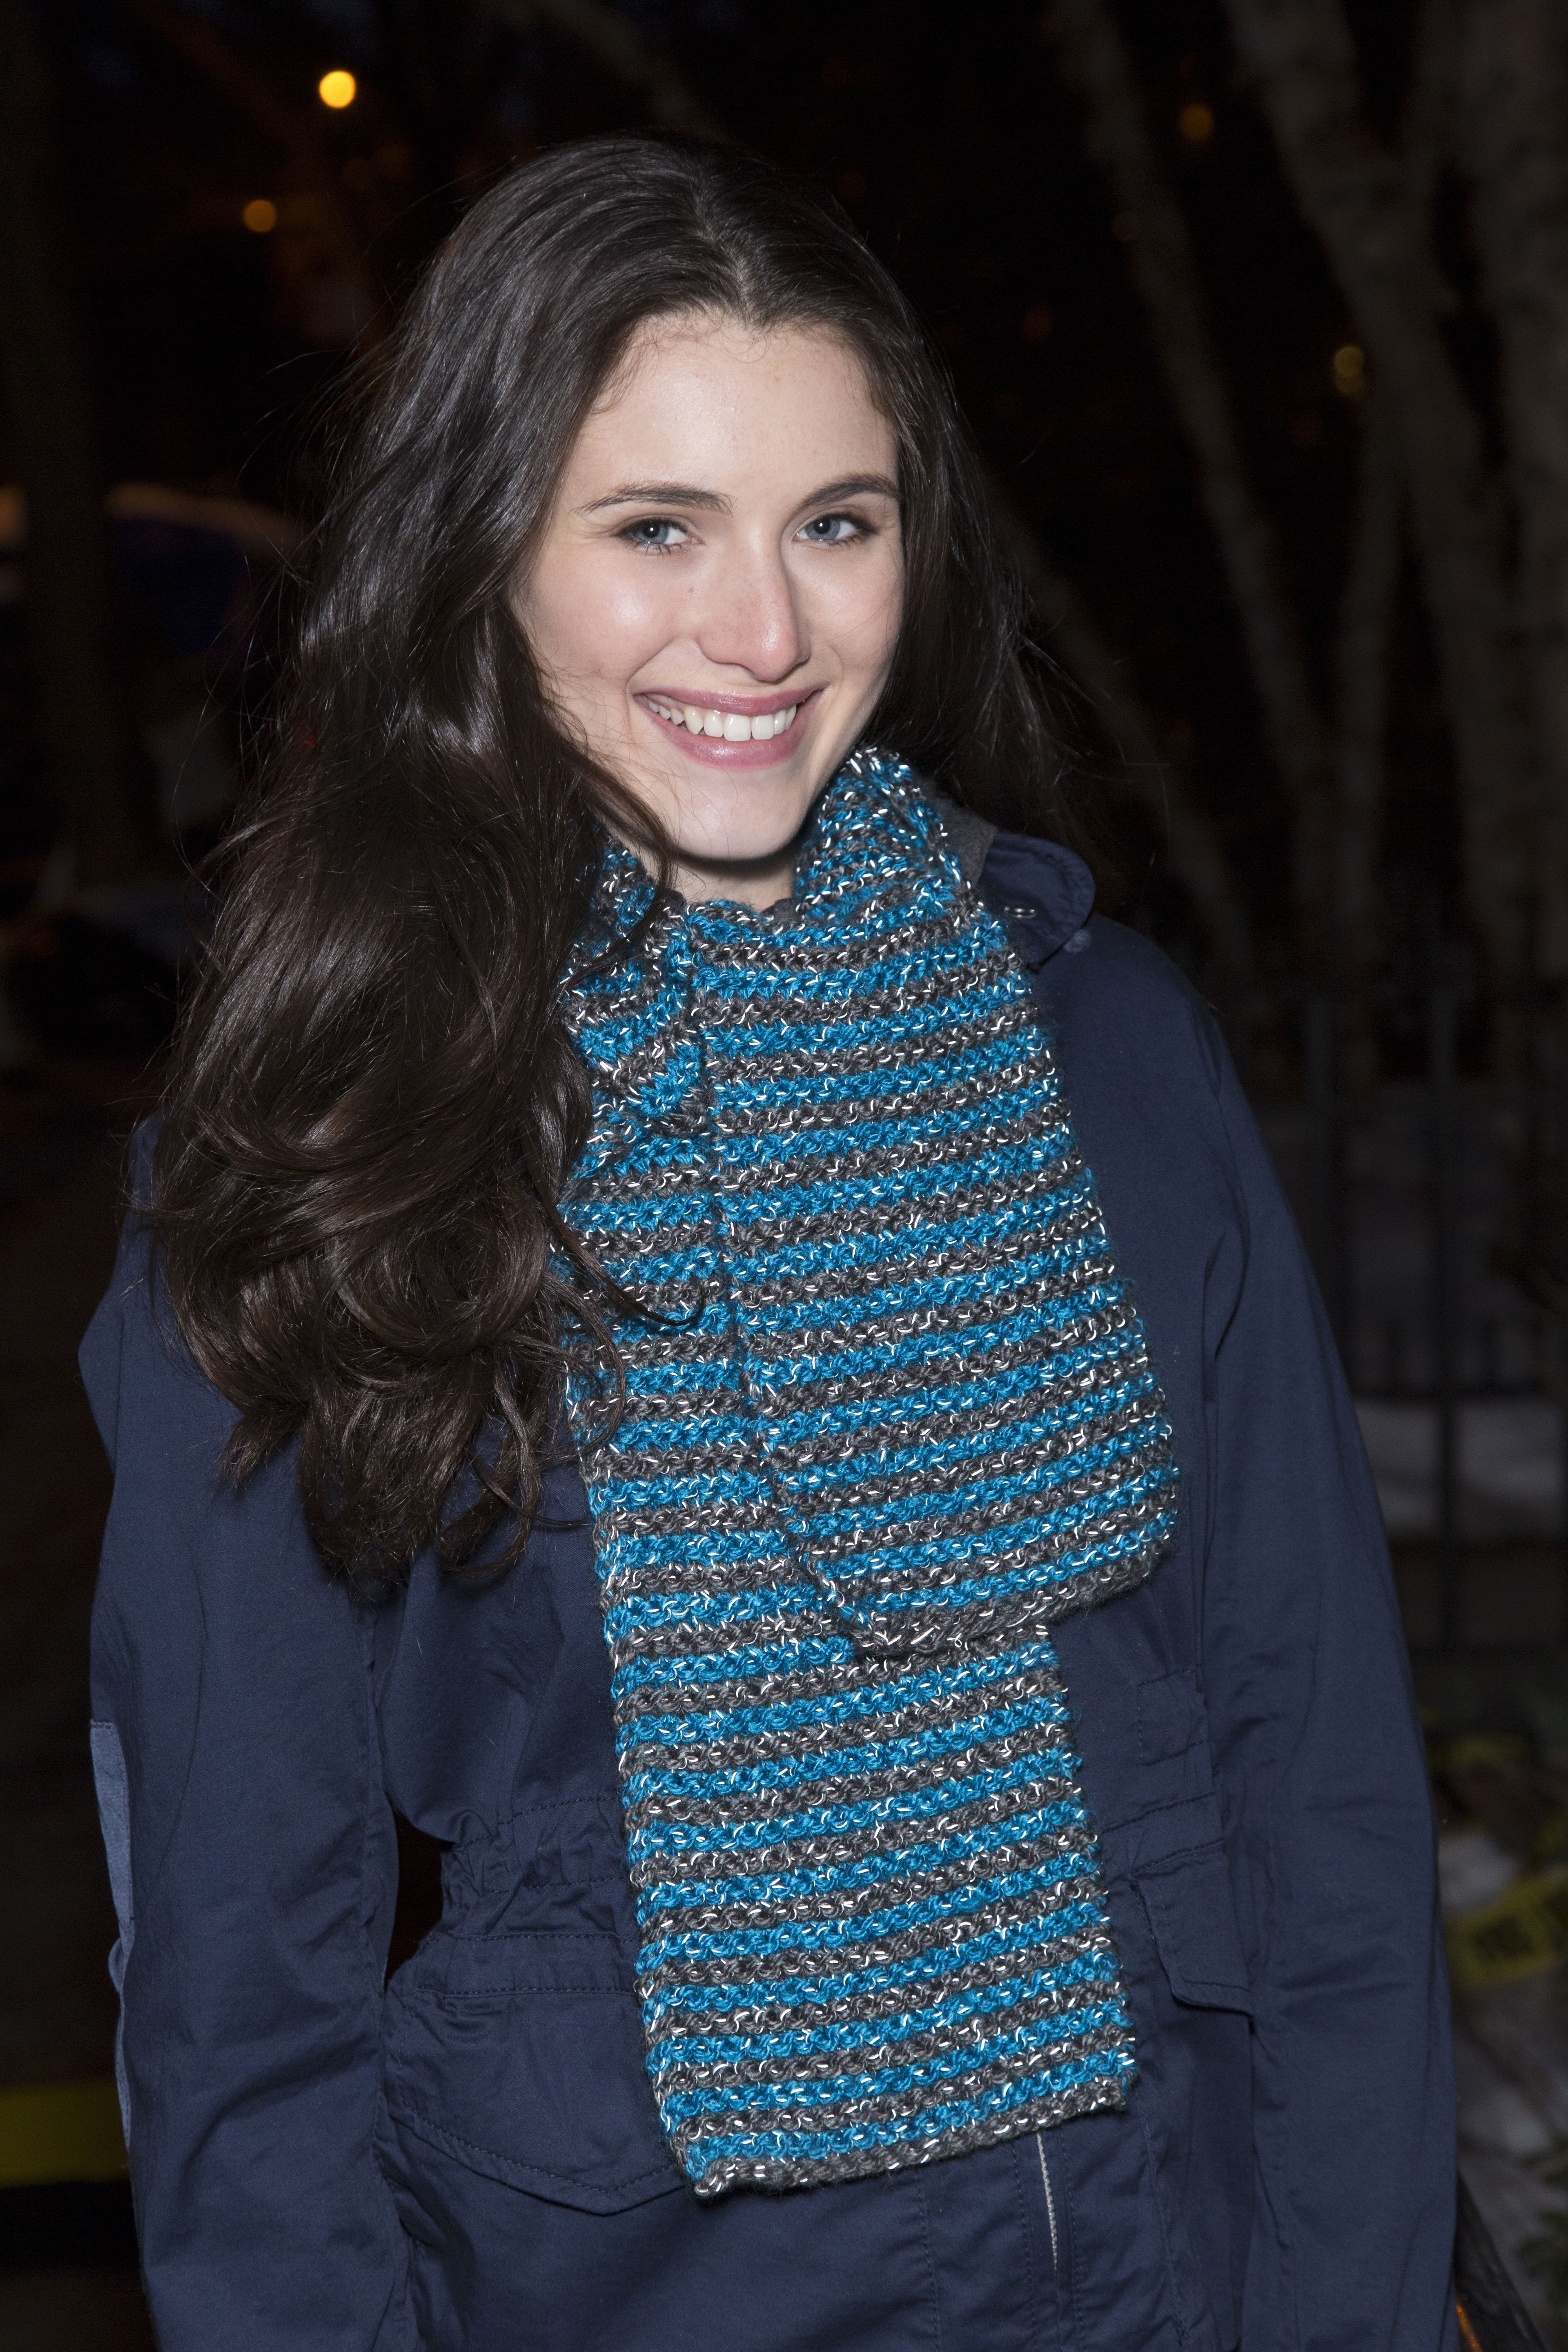 Knit In Stripes Scarf Free Knitting Pattern In Red Heart Yarns New